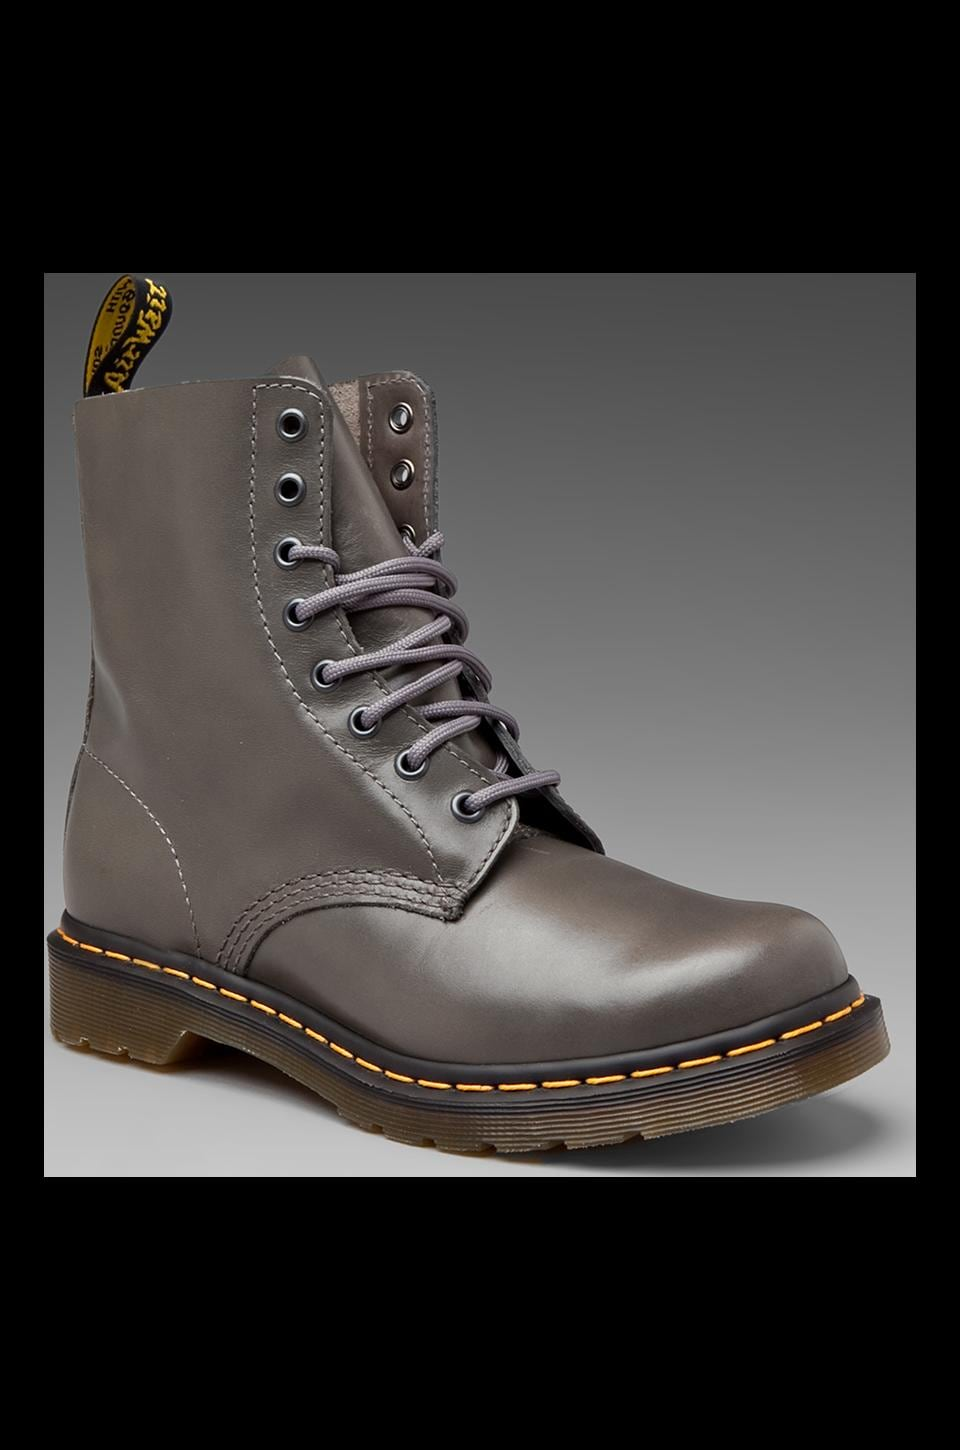 Dr. Martens Modern Classic 8 Eye Boot in Grey